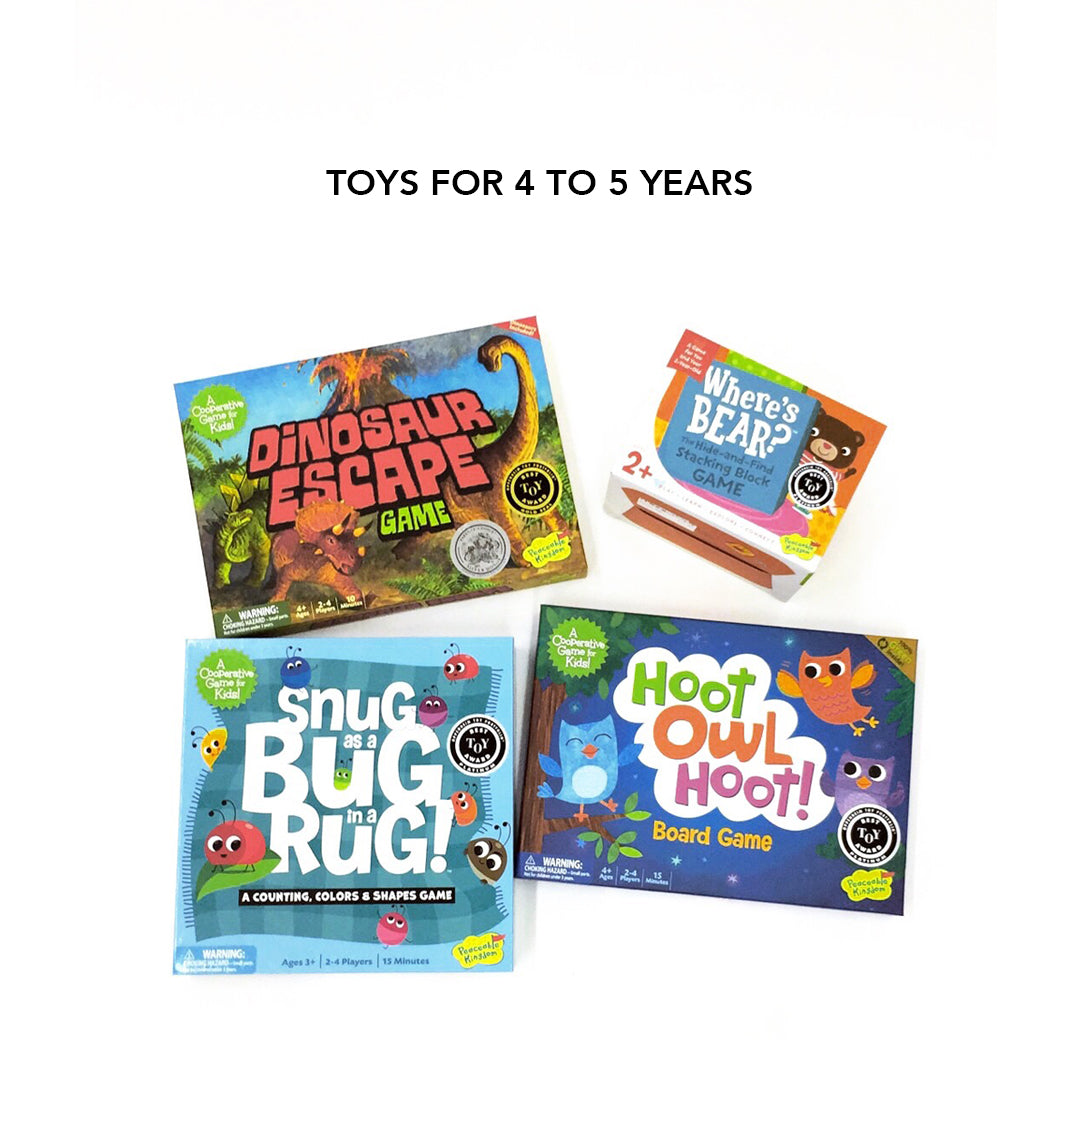 Toys for 4 to 5 years